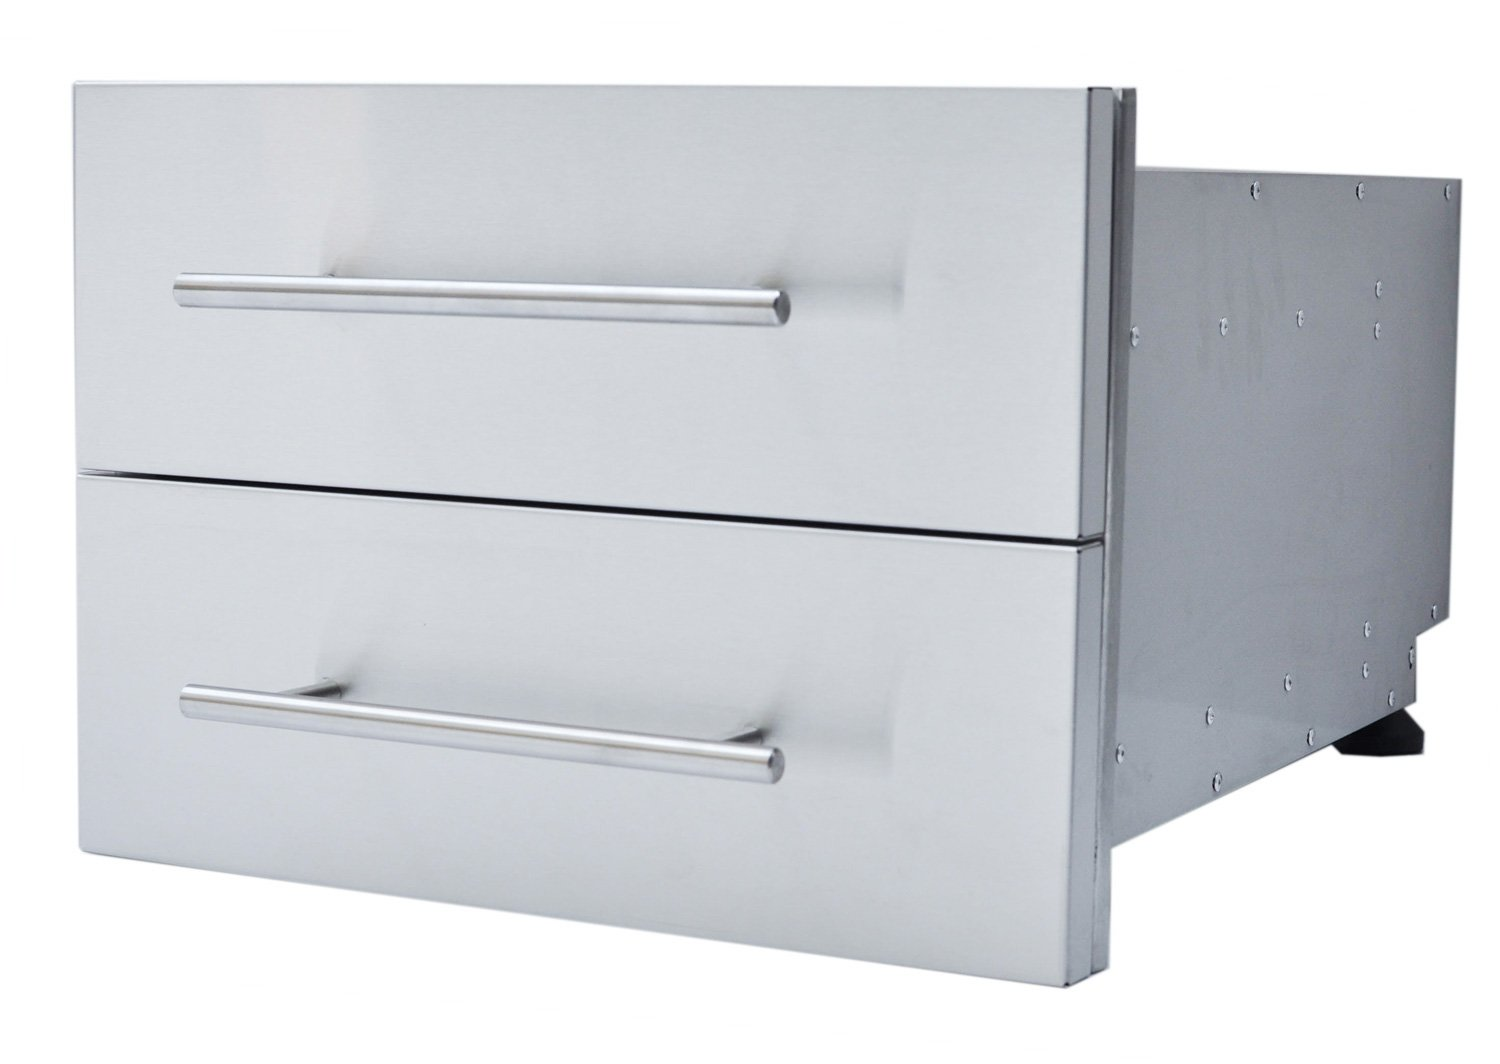 SUNSTONE DE-DD13 Designer Series Raised Style Height Double Drawer, 18'' x 13'', Stainless Steel by SUNSTONE